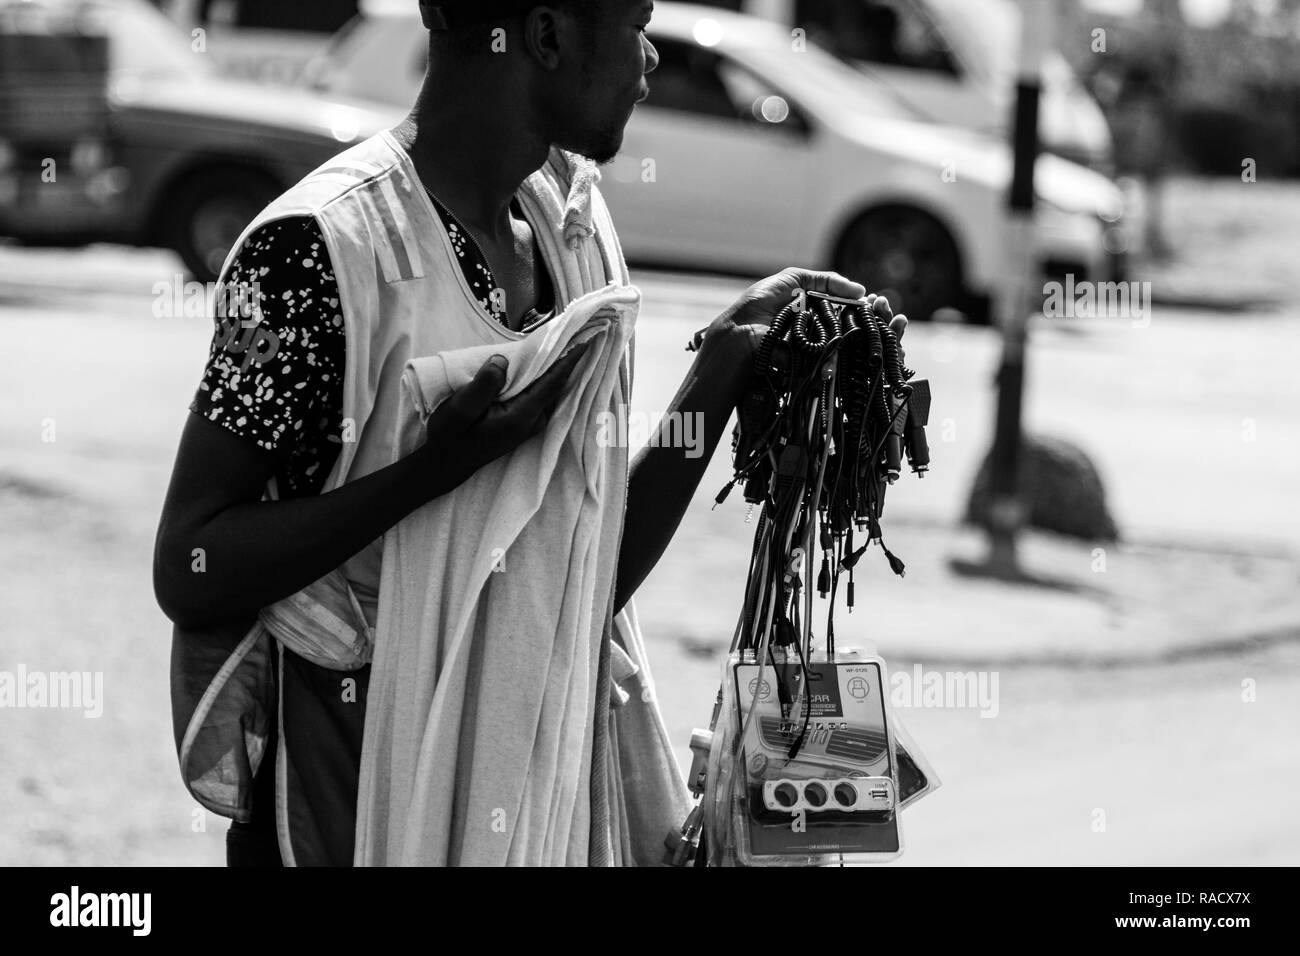 Harare, Zimbabwe - 23 Sep 2018: Young Zimbabwe street vendors sells his imported electronic wares at a traffic light due to unemployment. - Stock Image